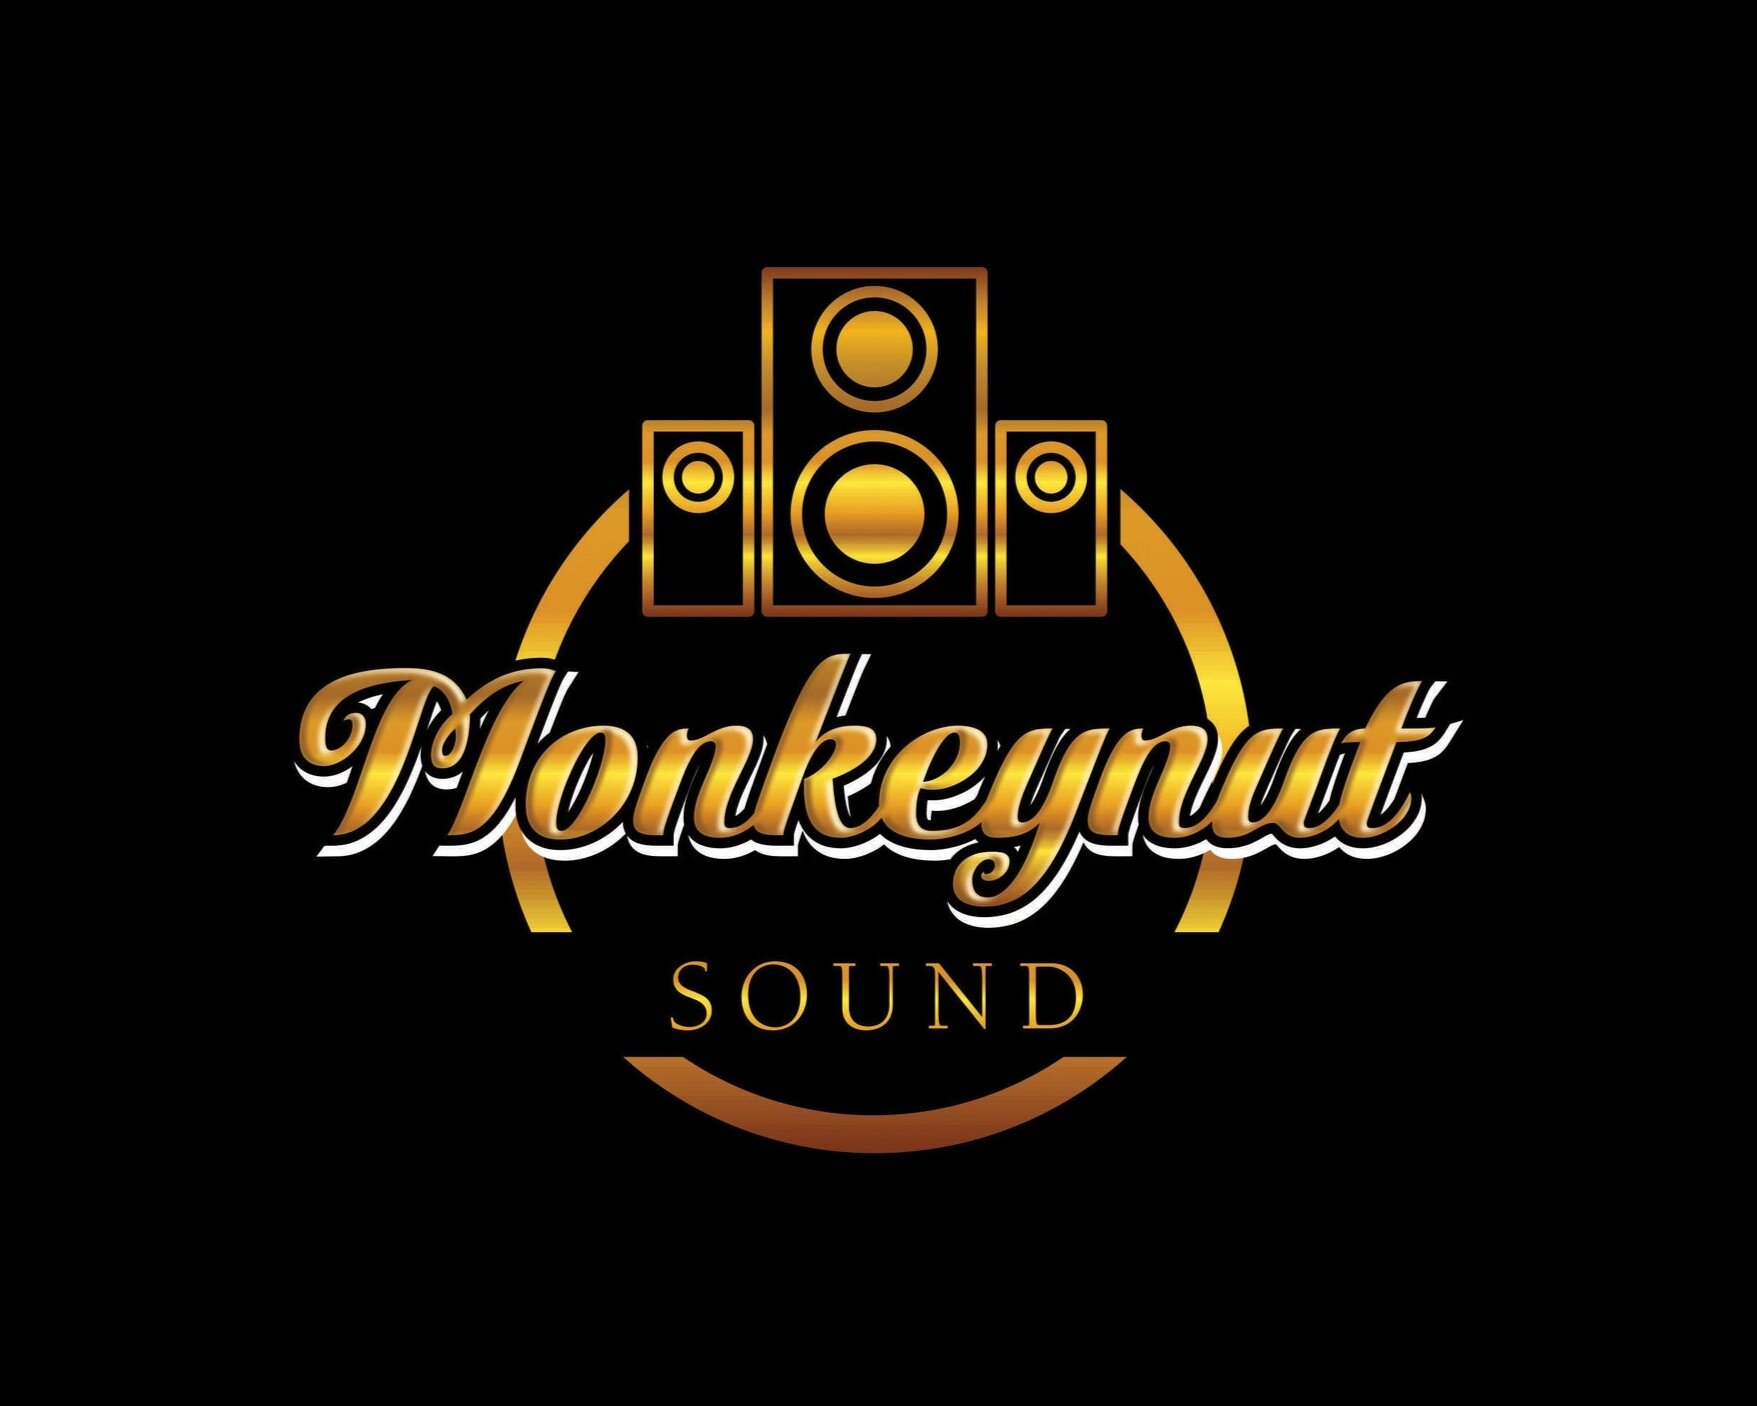 Offering full Production recordings, monkeynut entertainment create music for production shows, film, Television and theatre. Monkeynut Sound will record your Demo or album to industry standard.jpg